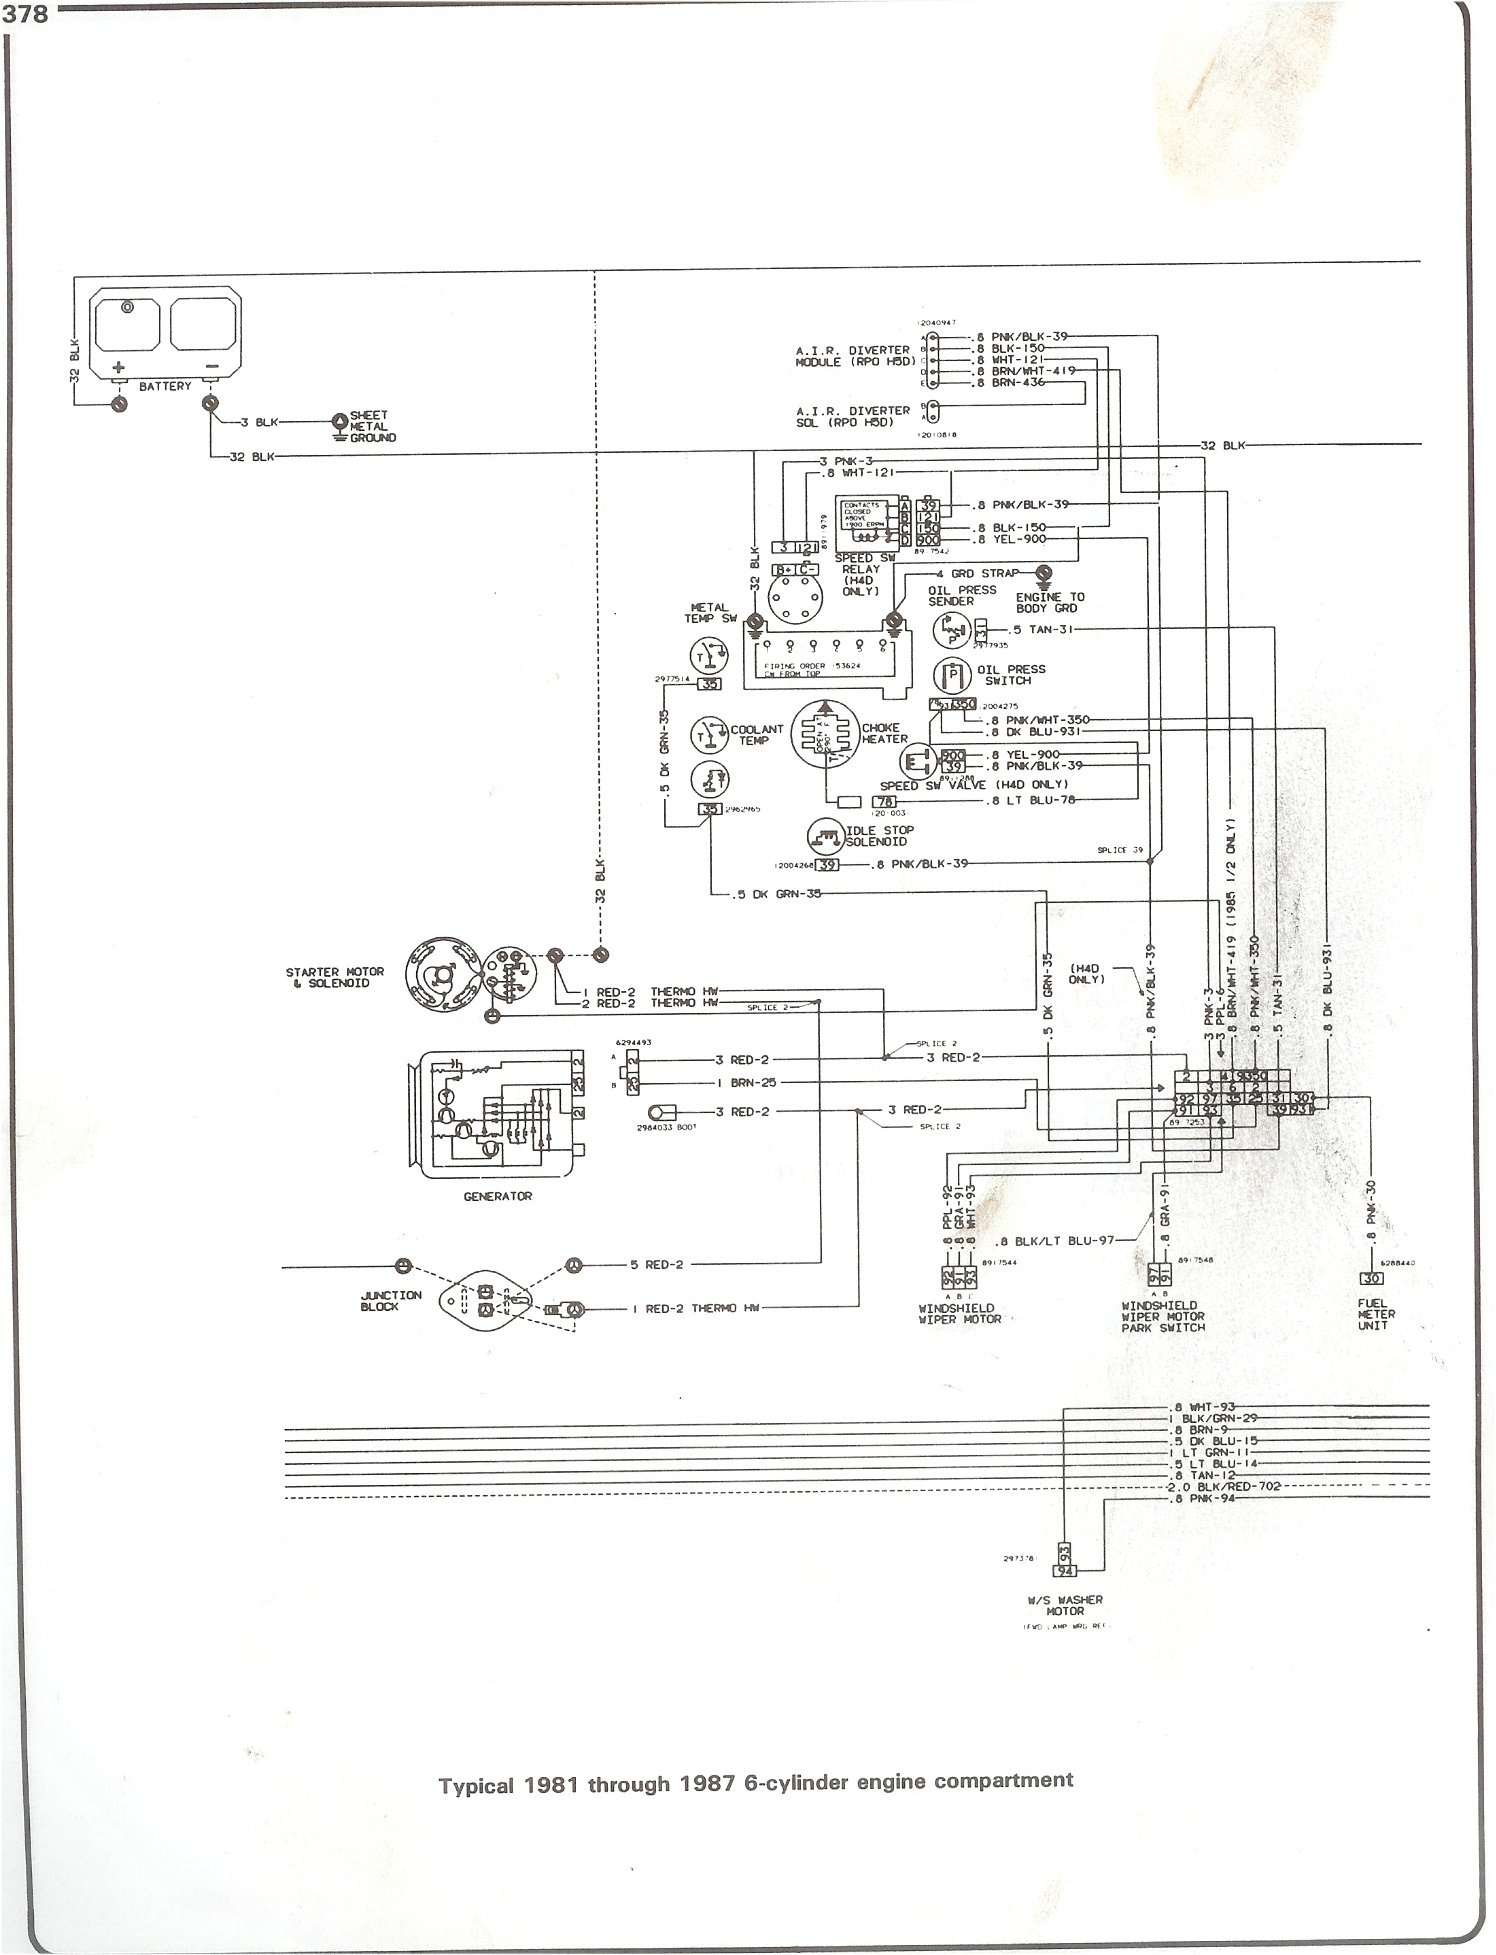 1981 Chevy Van Engine Wiring Diagram Opinions About Wiring Diagram \u2022  1991 Chevrolet Truck Electric Diagram 87 Chevy Van Wiring Diagram